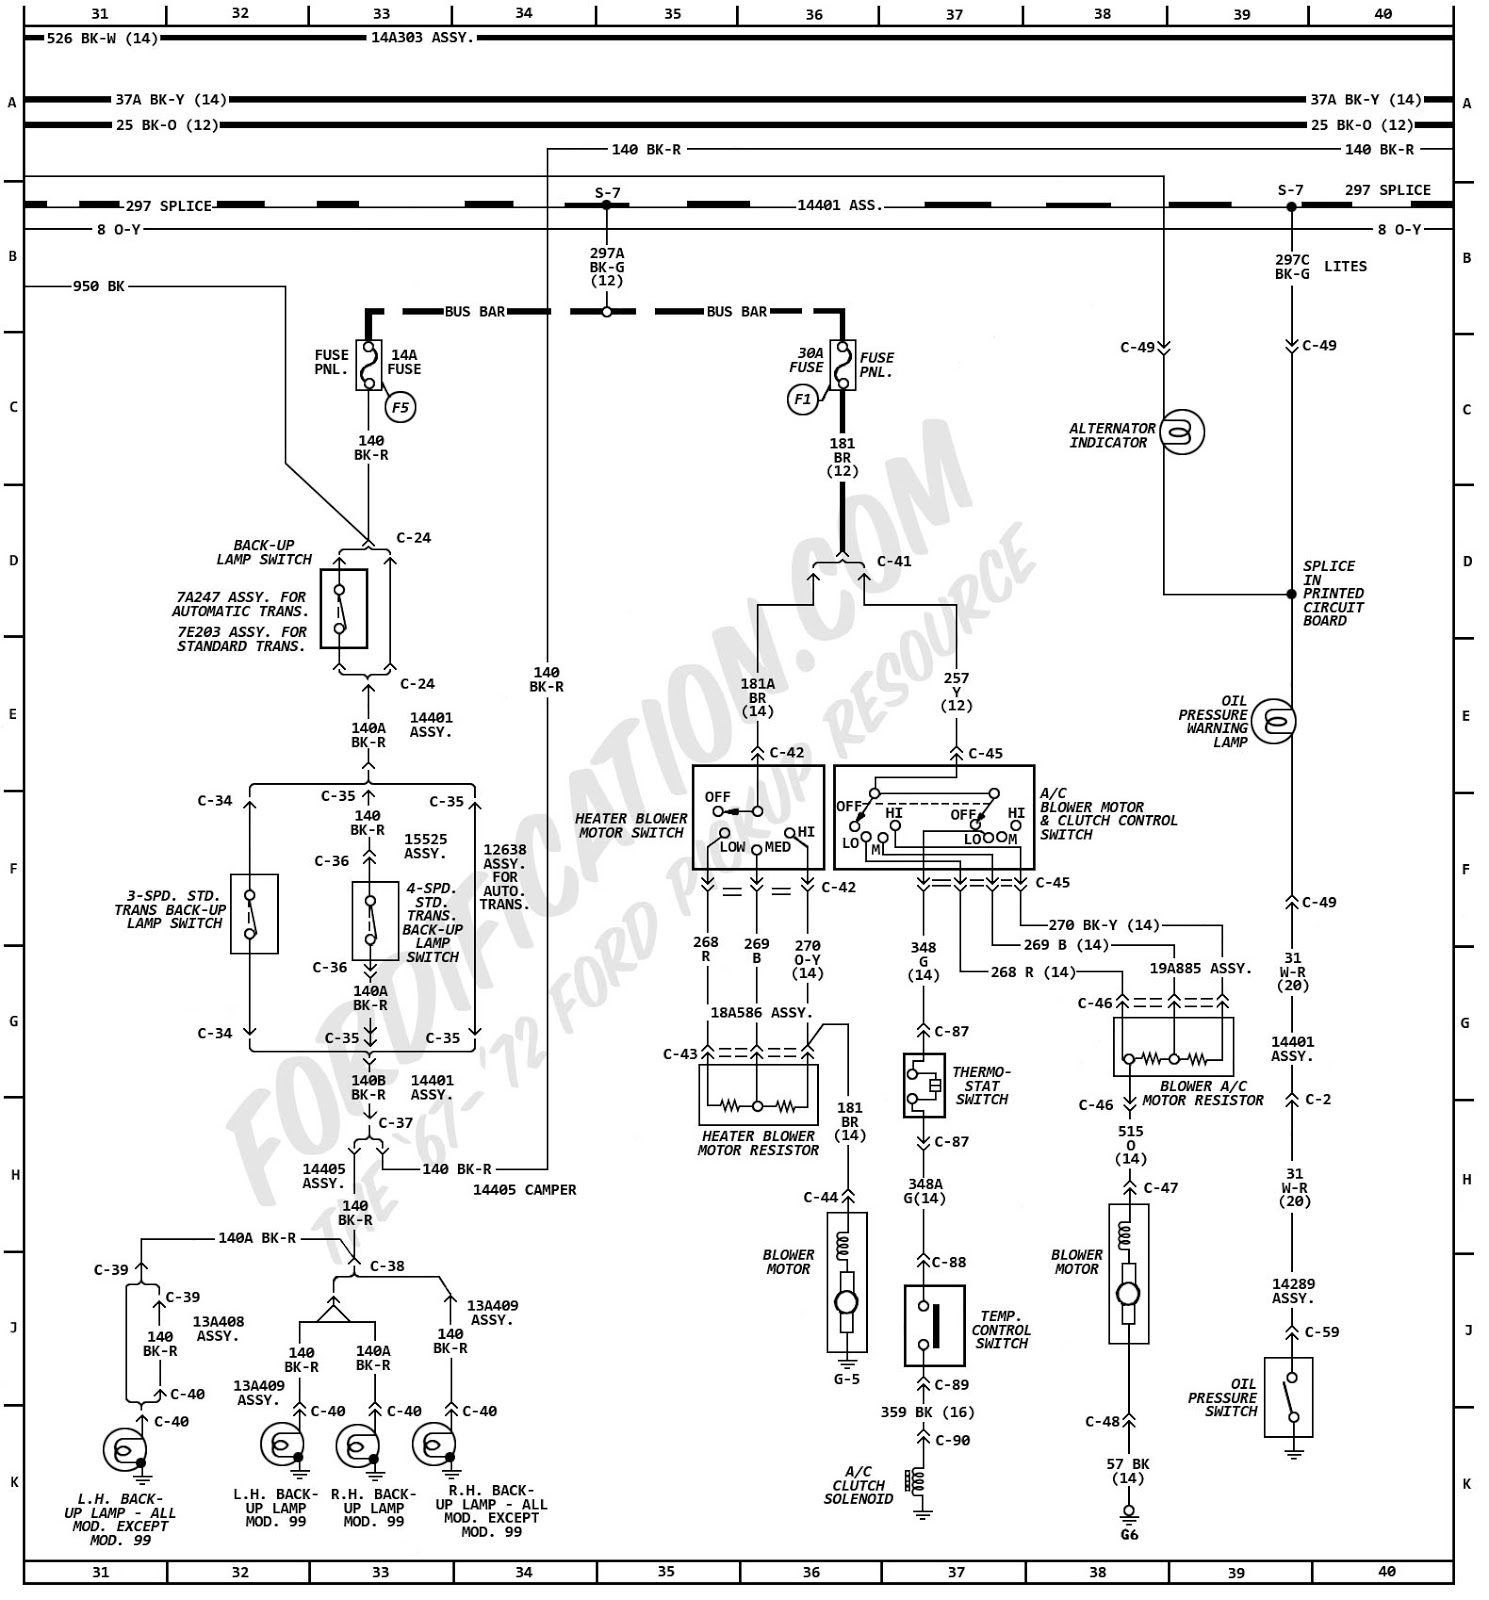 Diagram Servo Motor Wiring Diagram Full Version Hd Quality Wiring Diagram Diagramkiferk Operepieriunite It